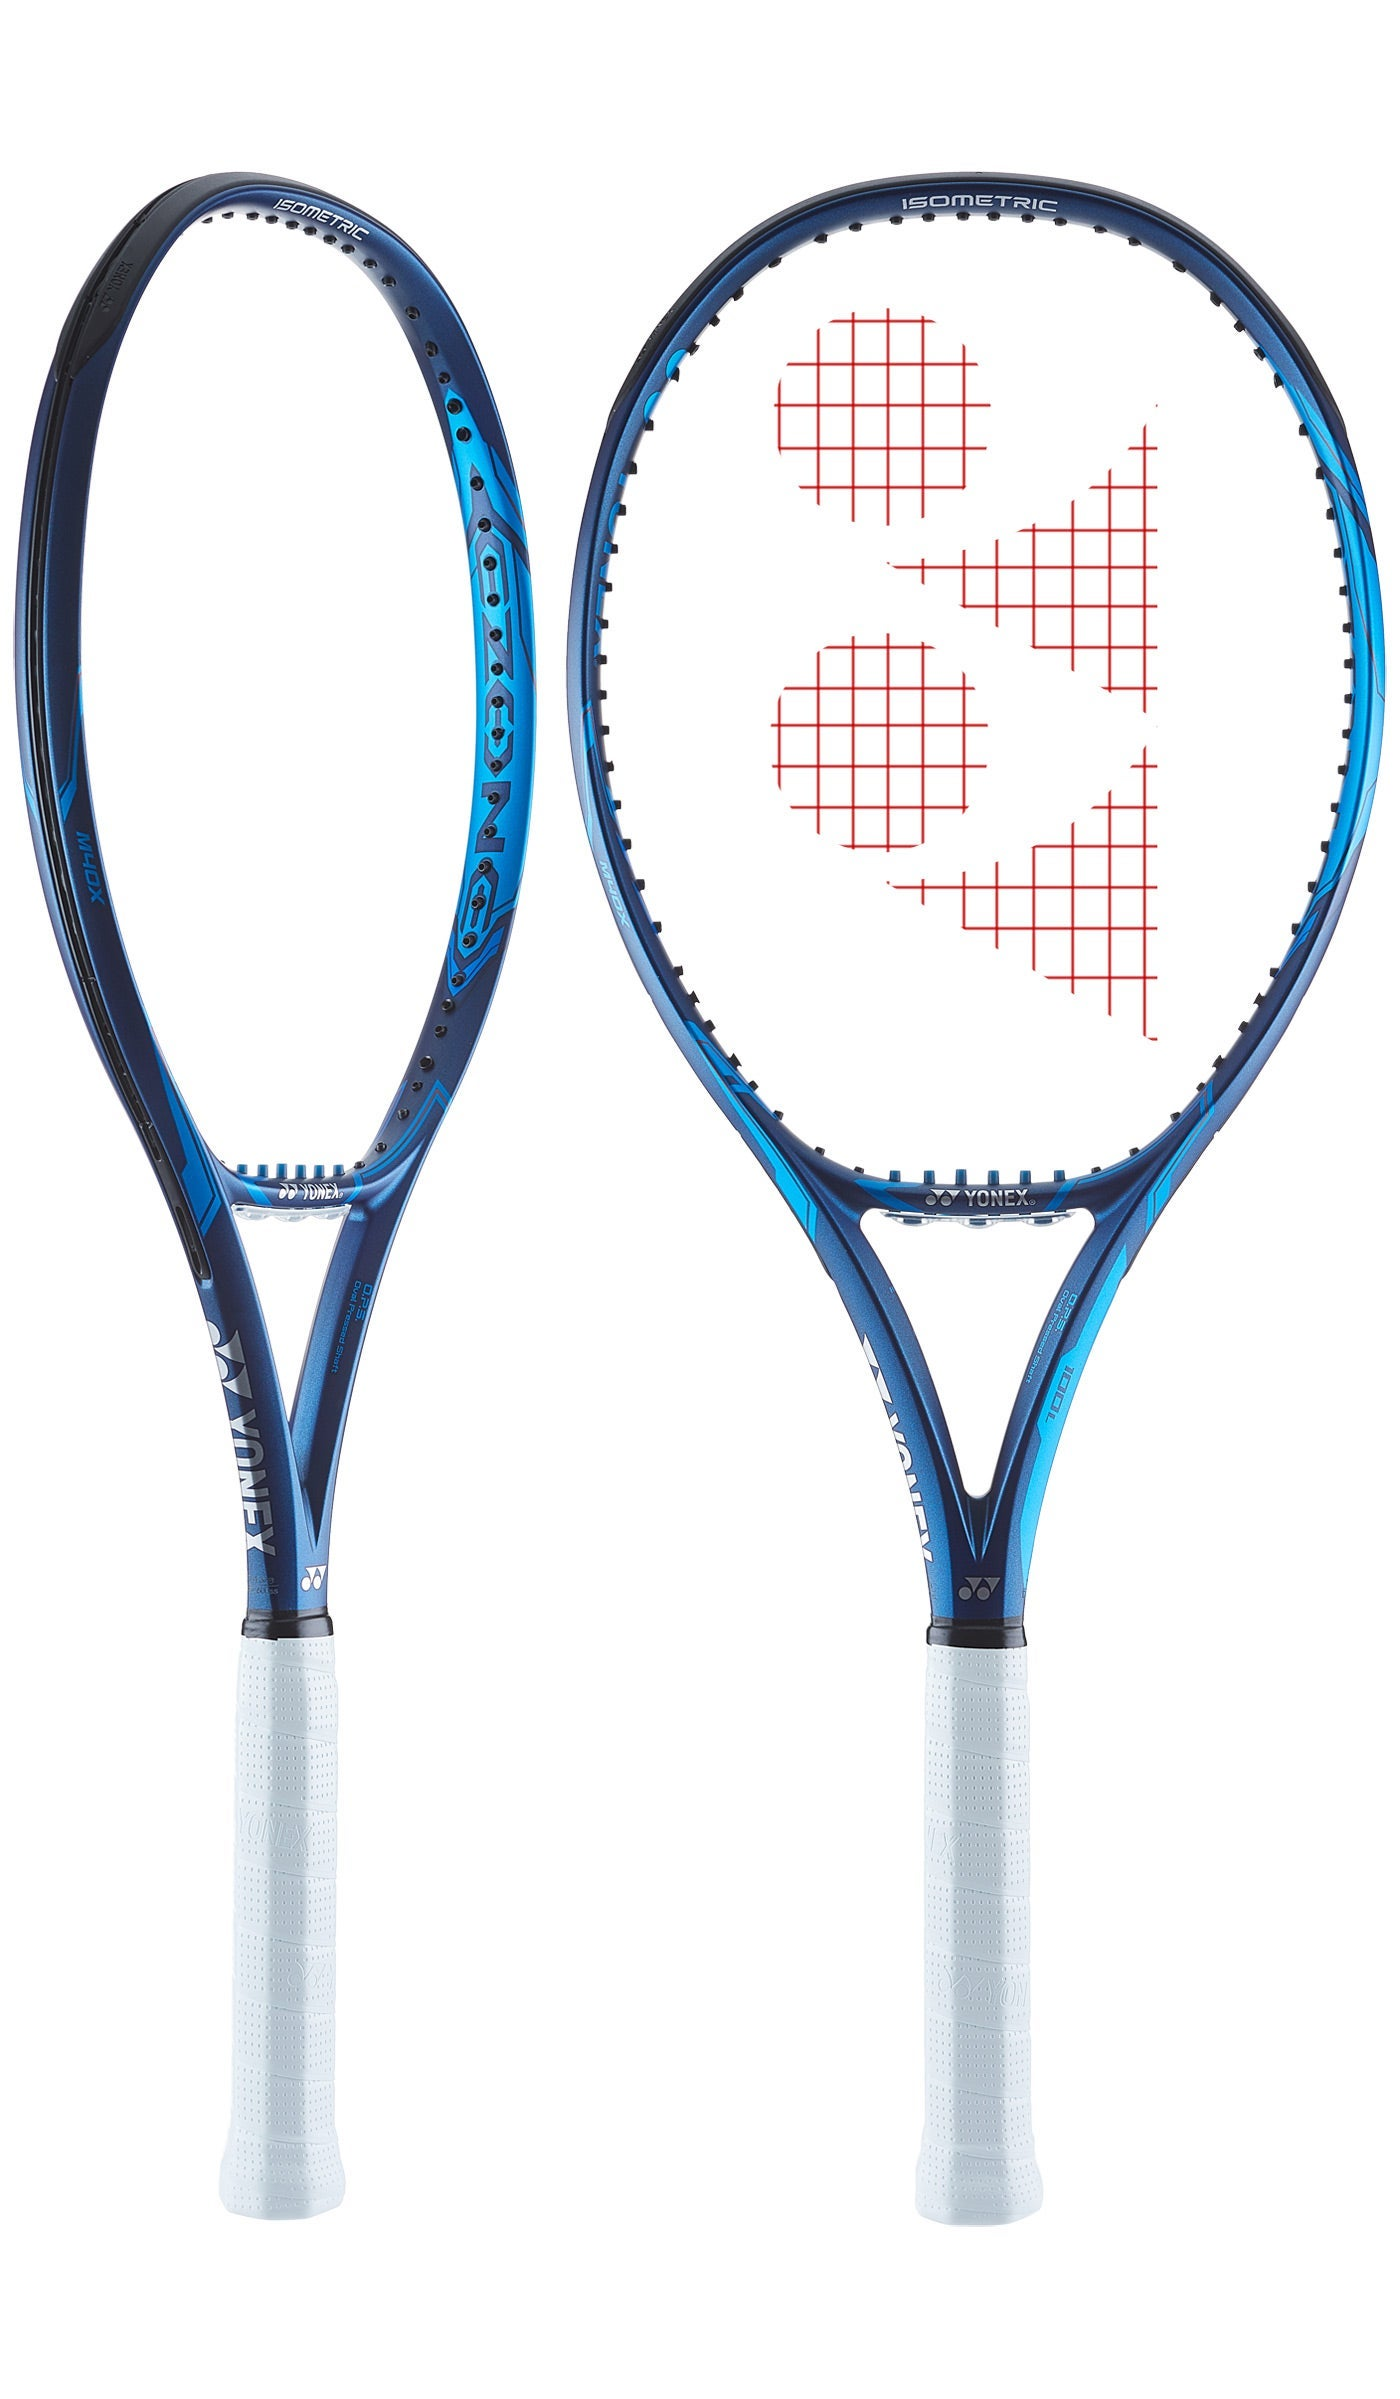 Tennis Yonex EZONE 100L 2020 Made in Japan - 285gram